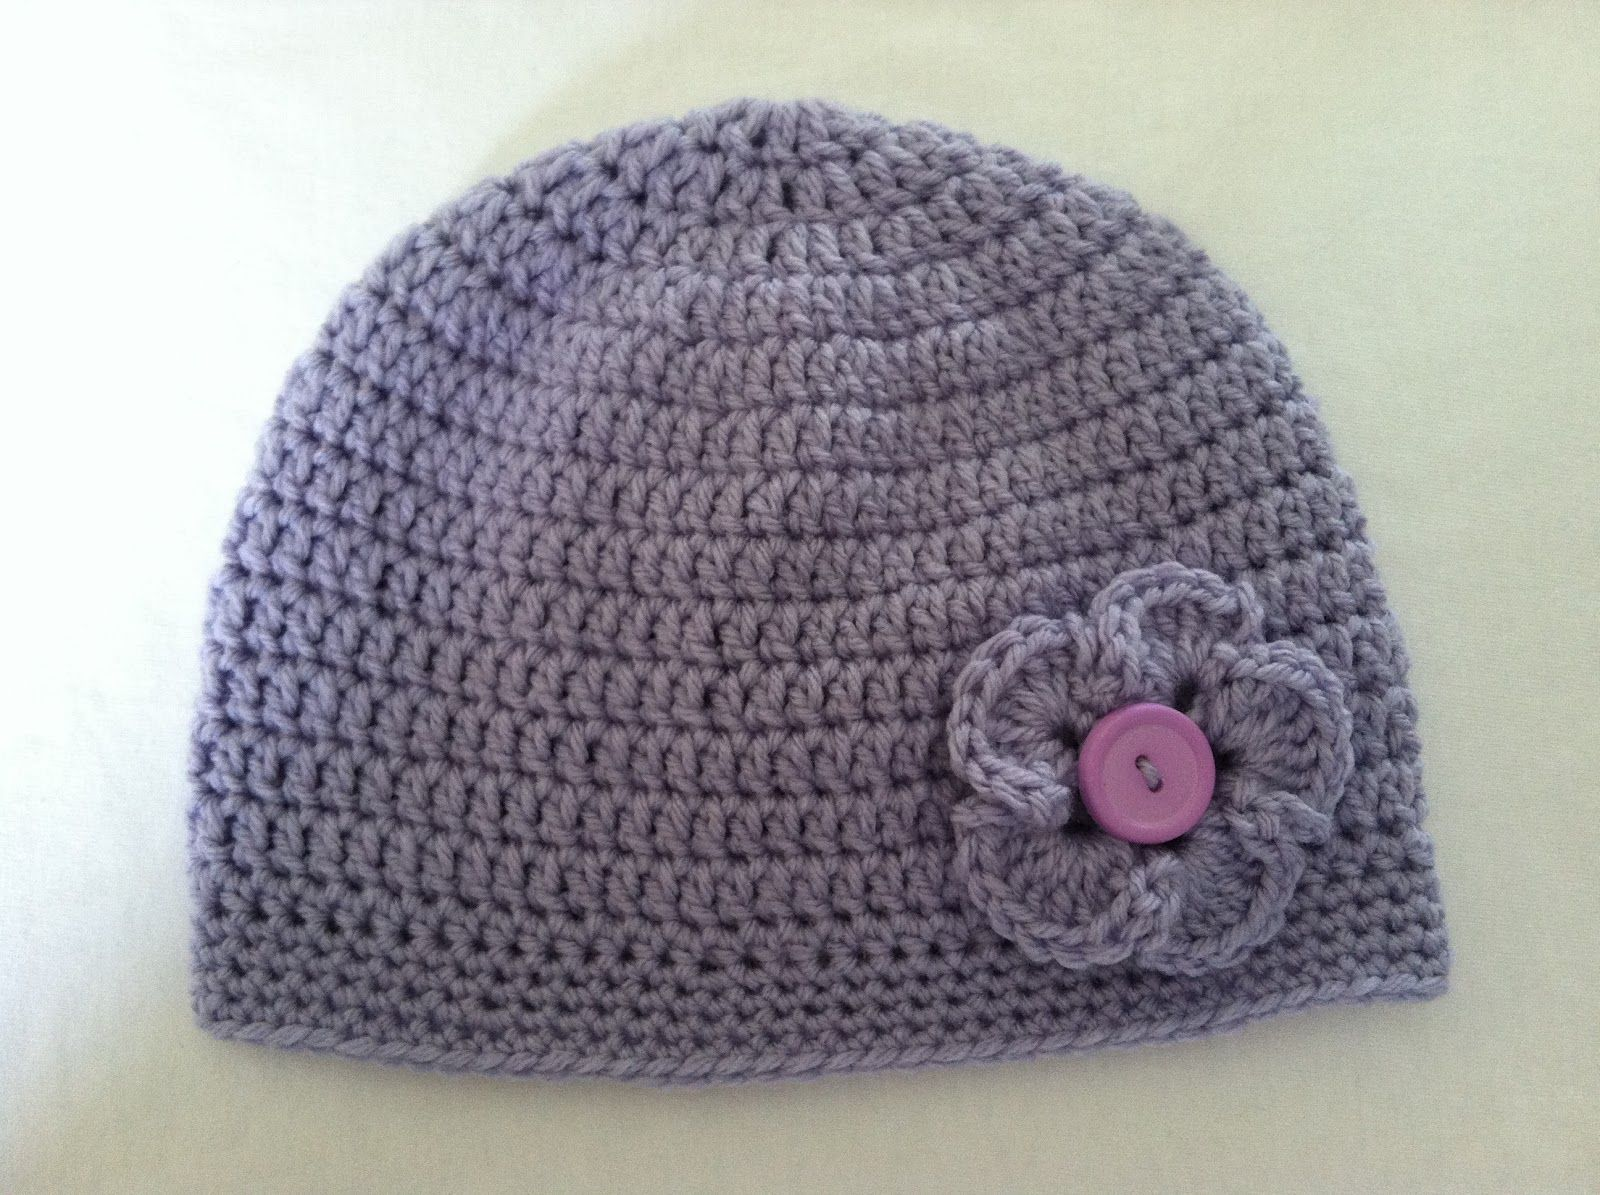 free crochet chemo hat patterns | Free Crochet Pattern For Chemo Cap ...